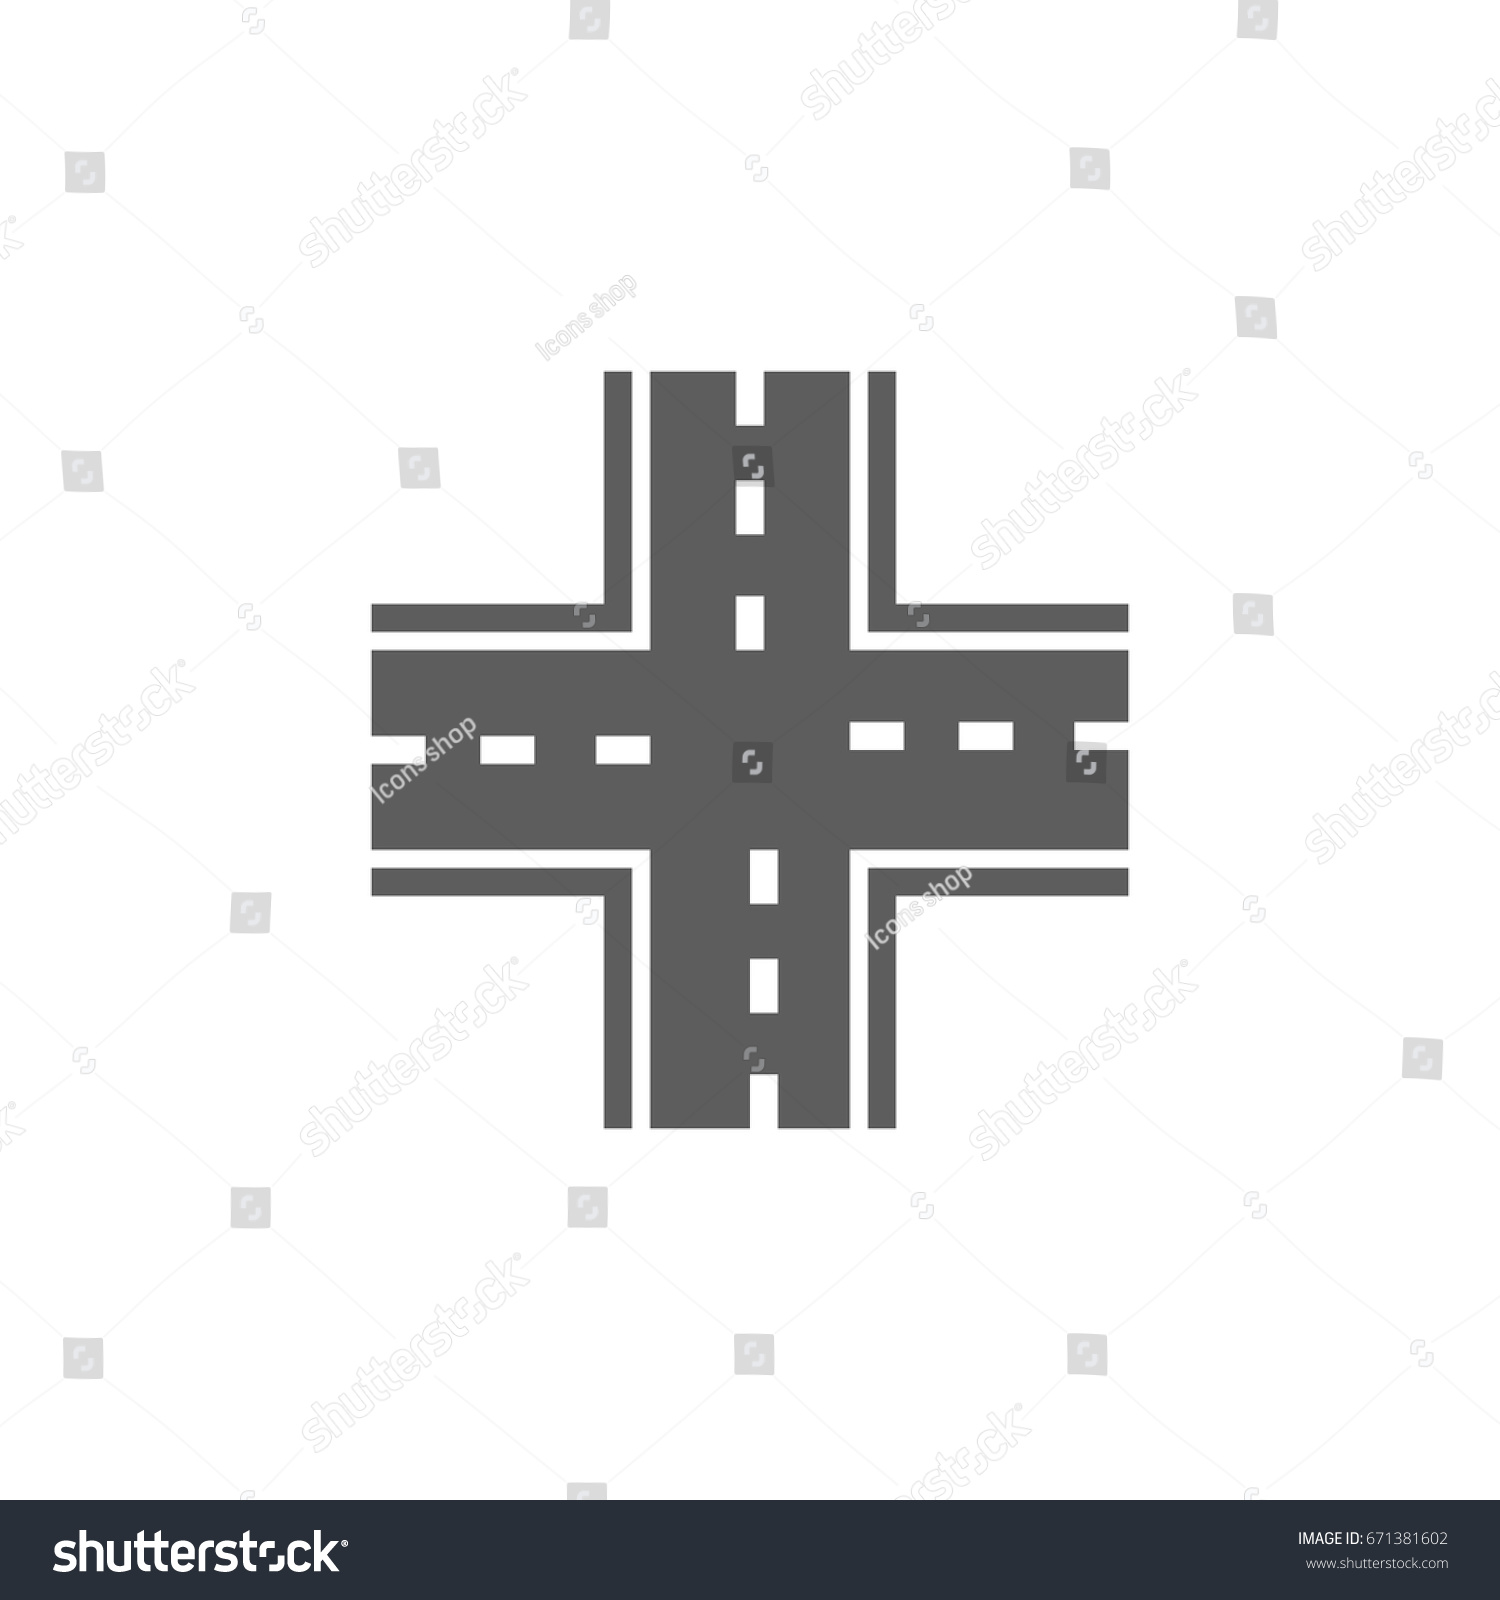 Intersection Icon Trendy Flat Style Isolated Stock Vector 671381602